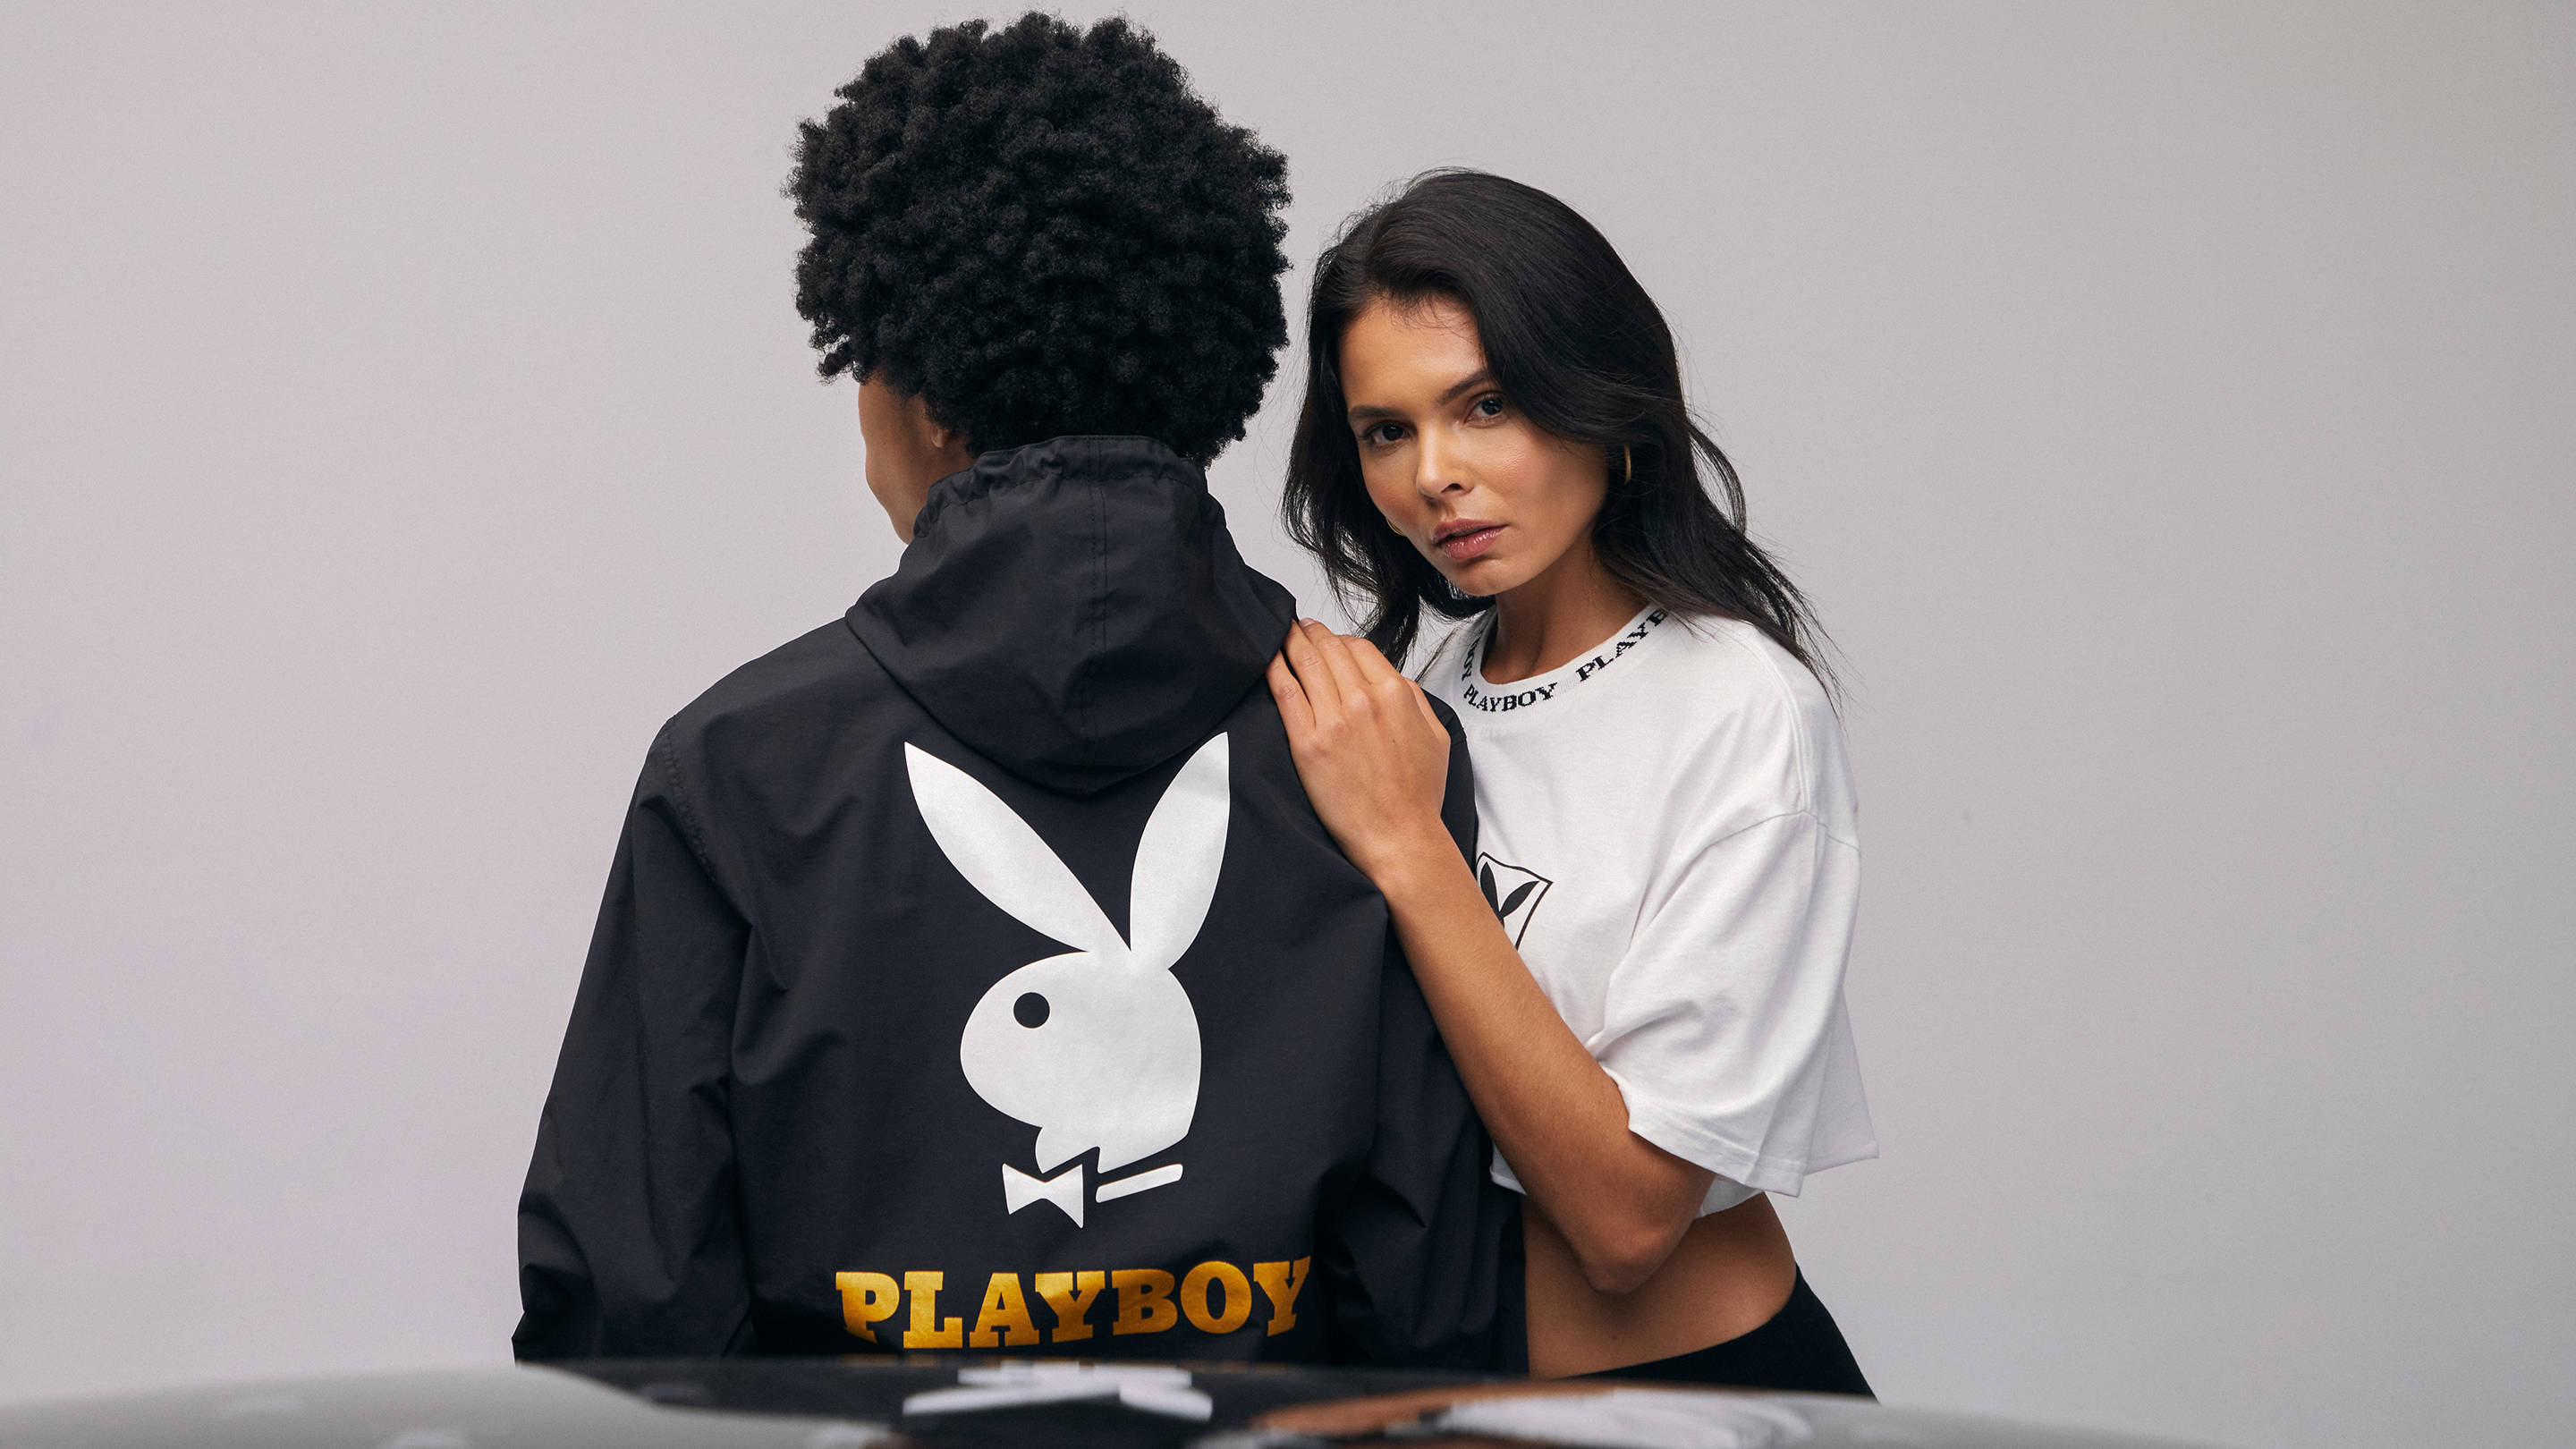 Playboy for PacSun: Spring/Summer 2019 Collection